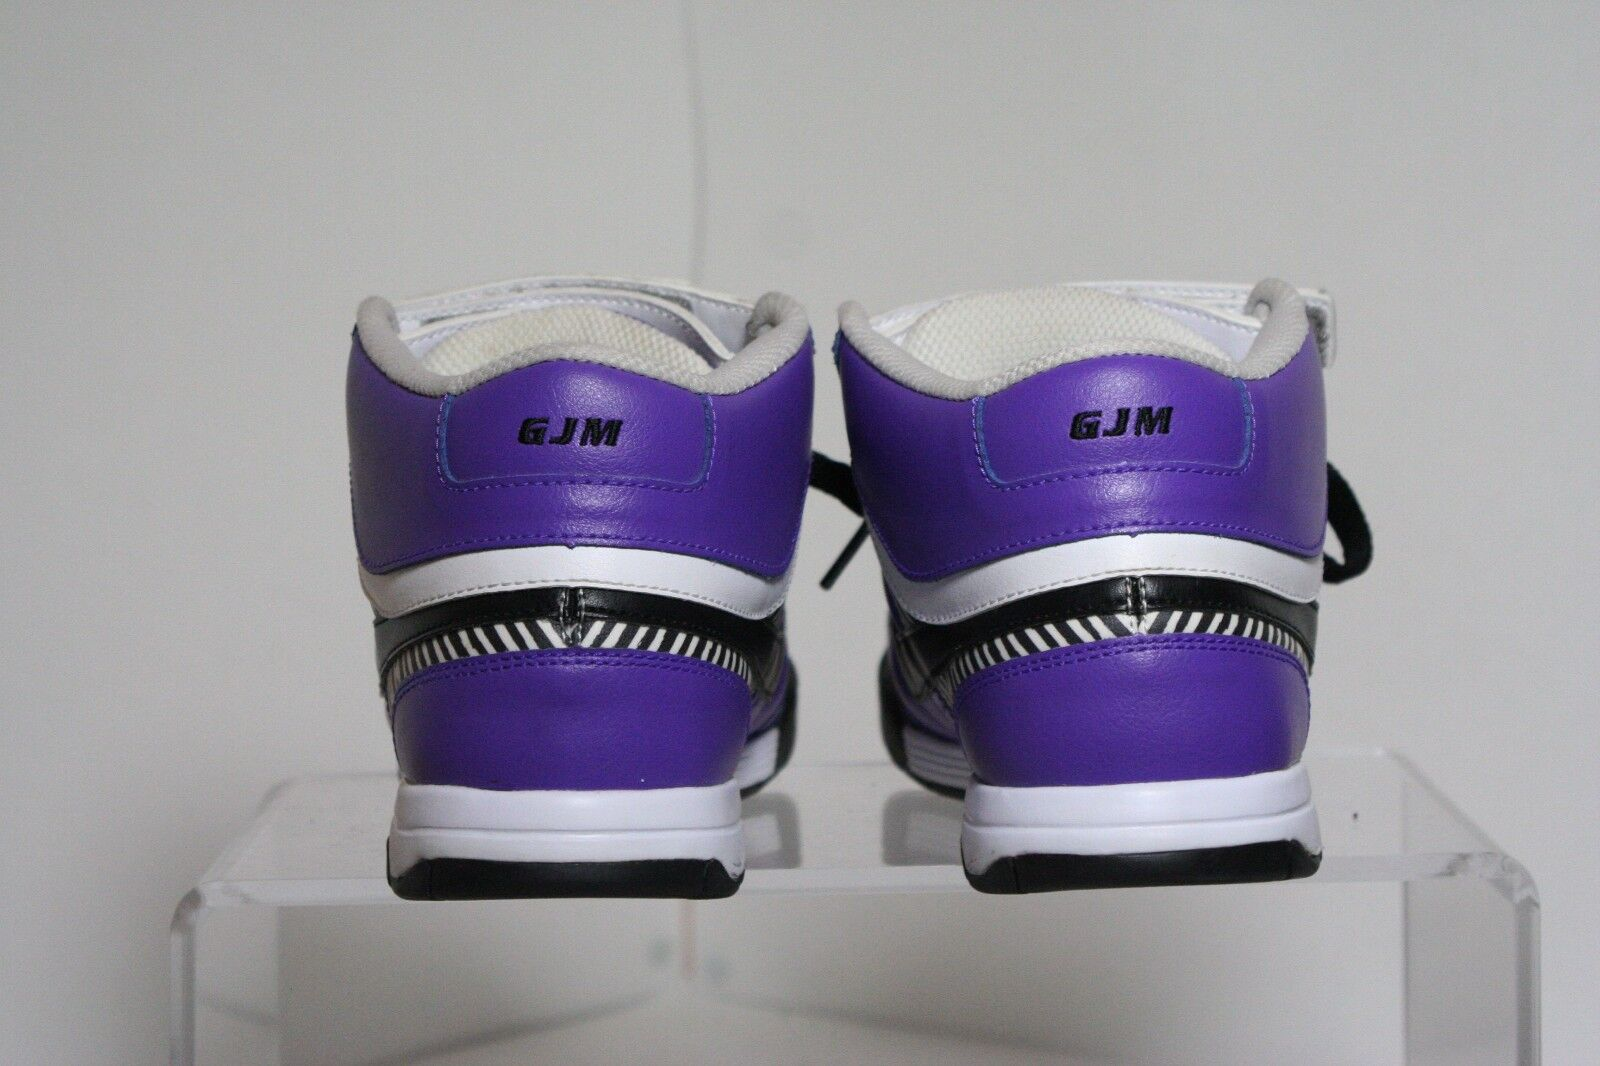 nike id mi air mogan 6,0 mi id - baskets 09 « athletic hipster Violet  multi - hommes 7 9ce34d